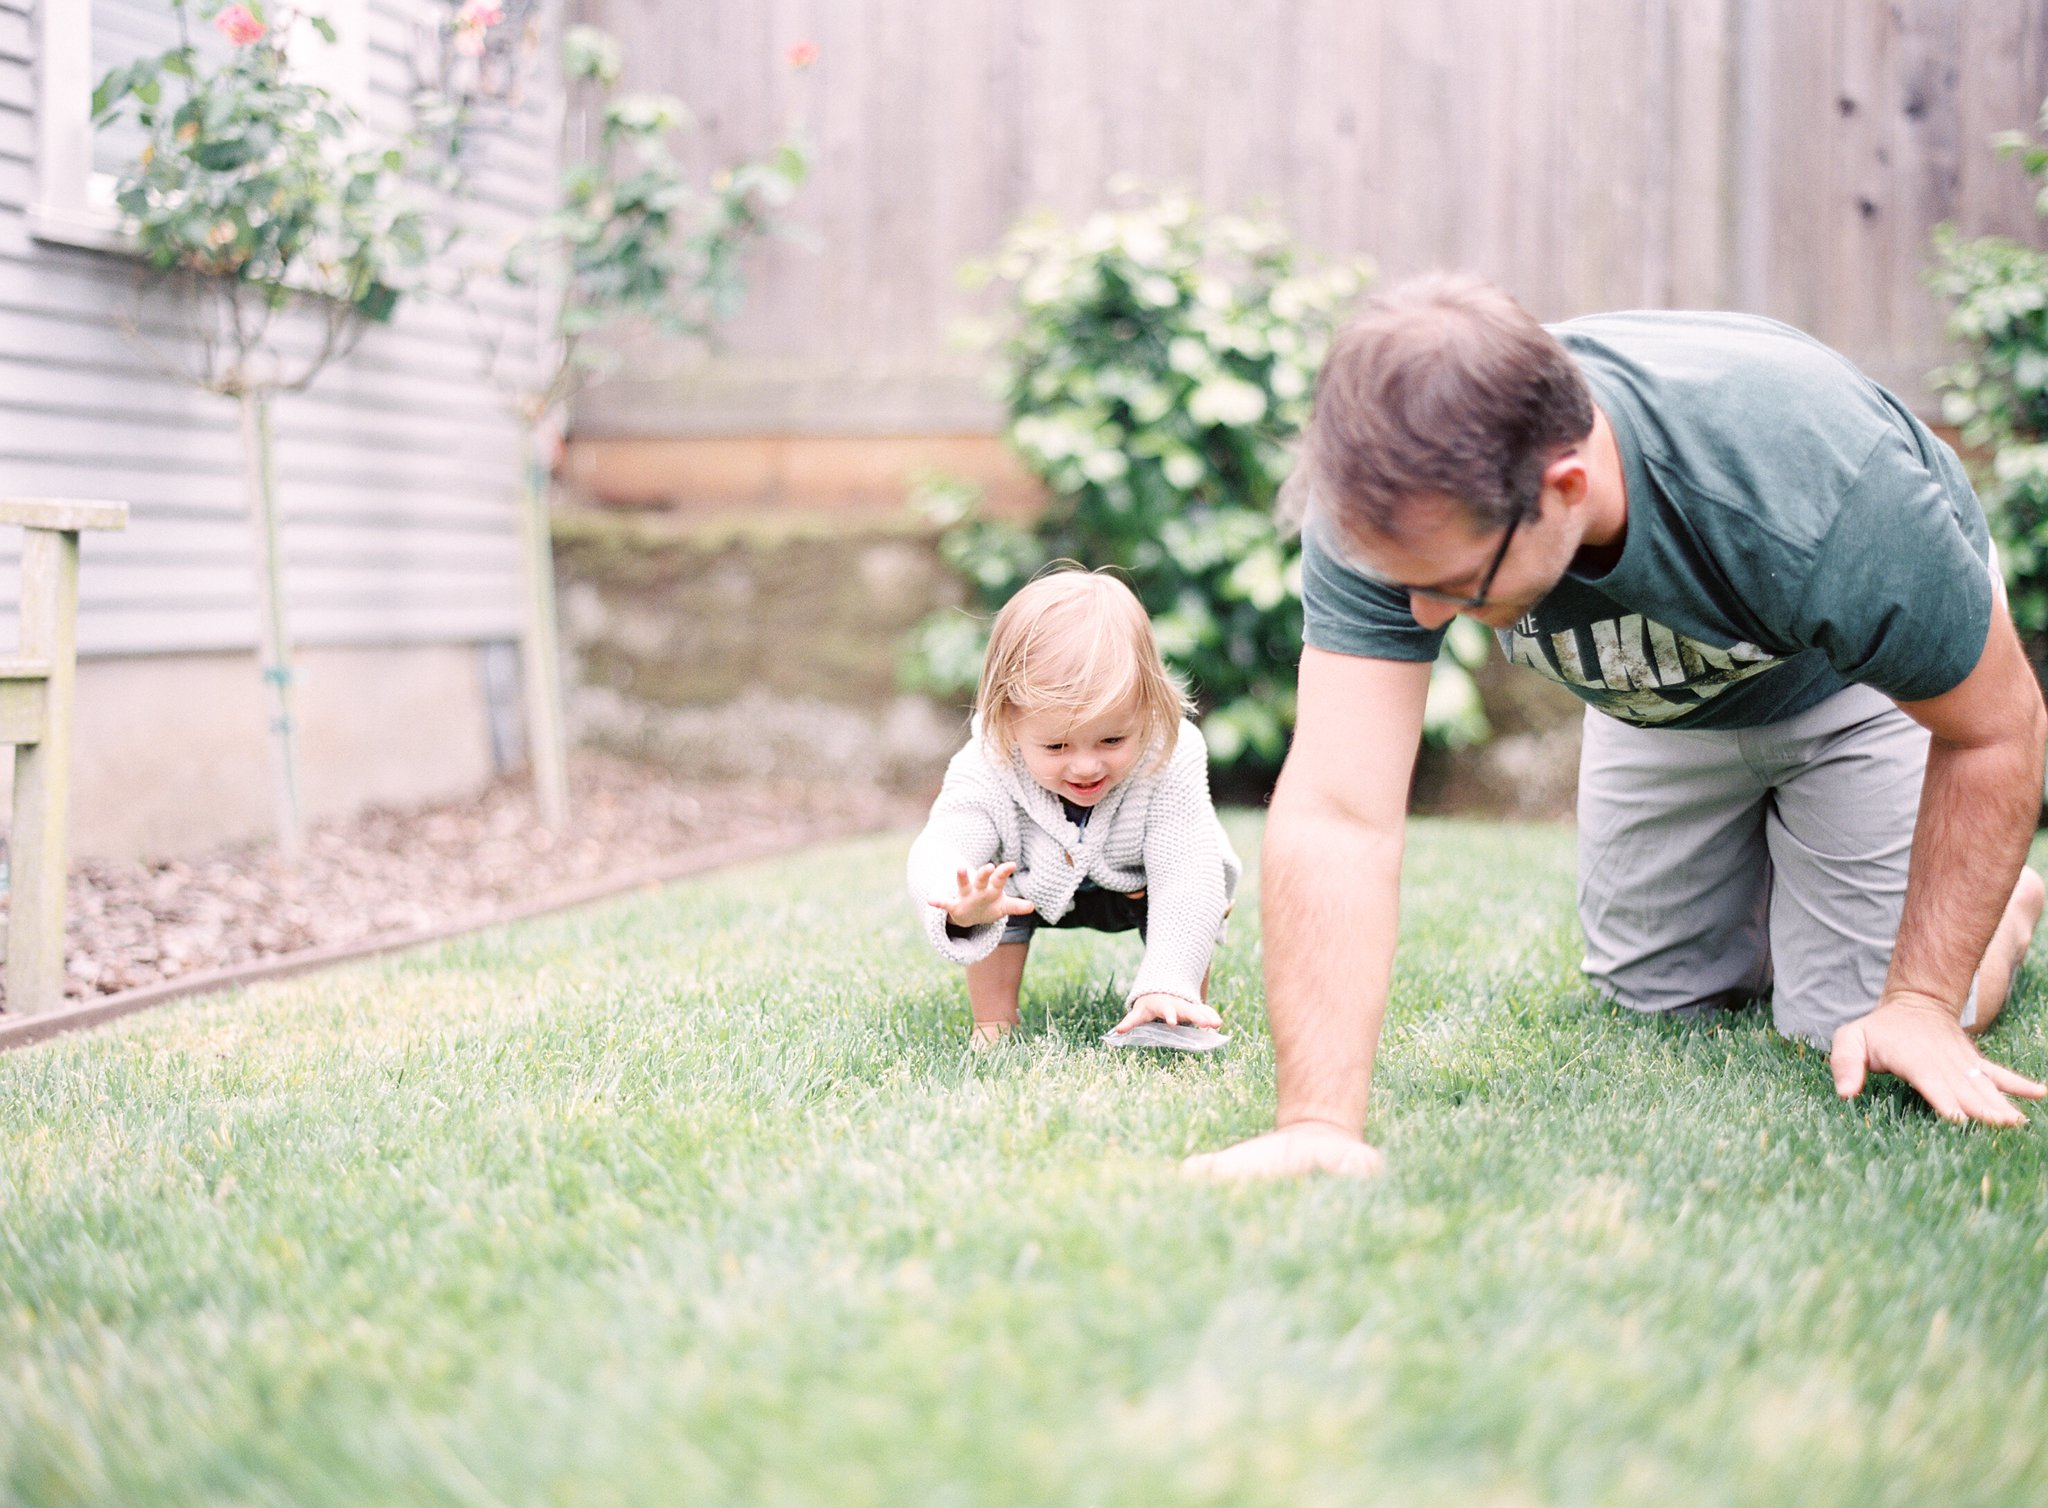 san francisco family session san francisco family photographer shannon griffin photography_0054.jpg